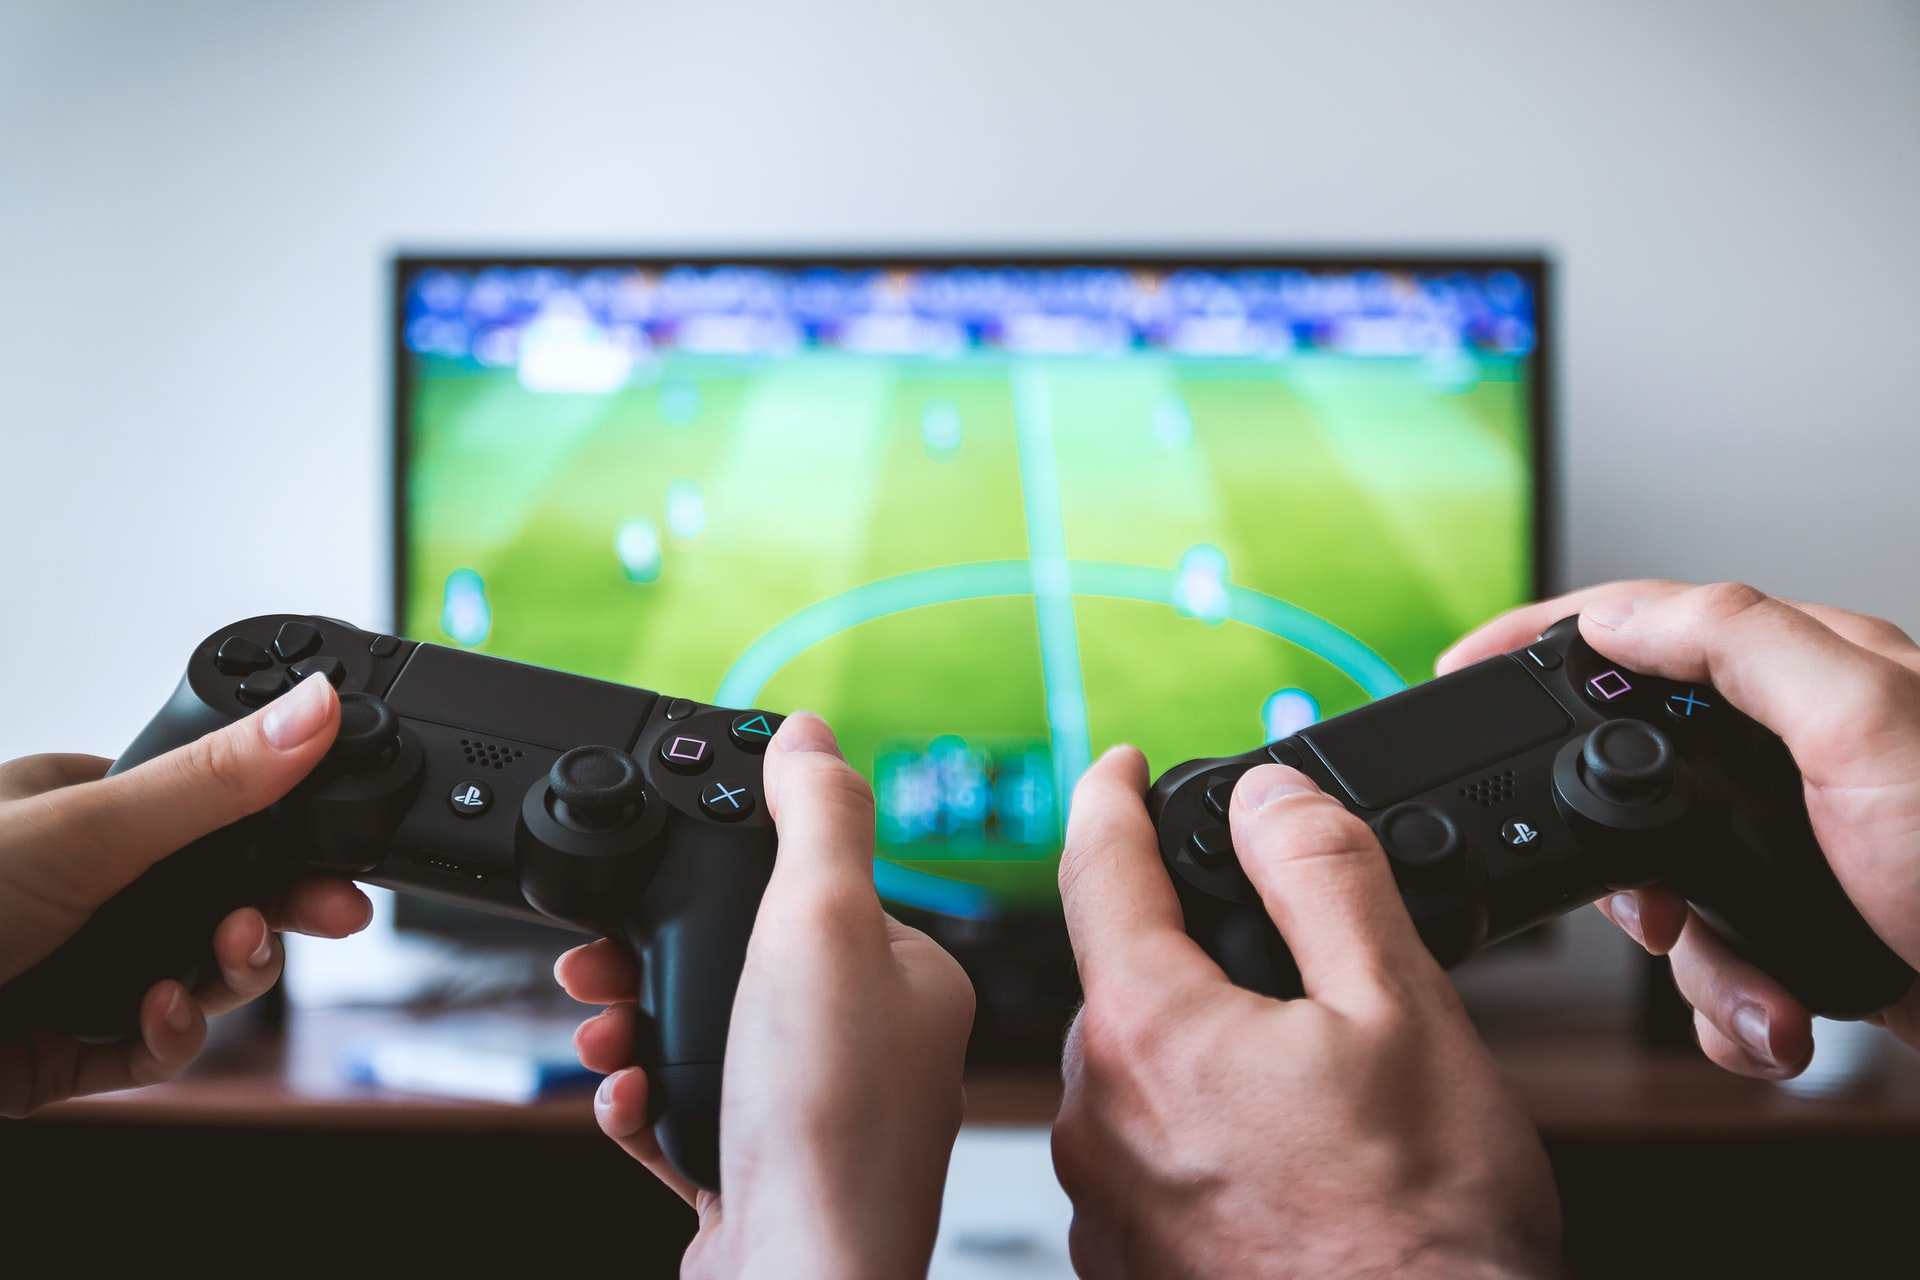 Learn How to Rent Video Games Here